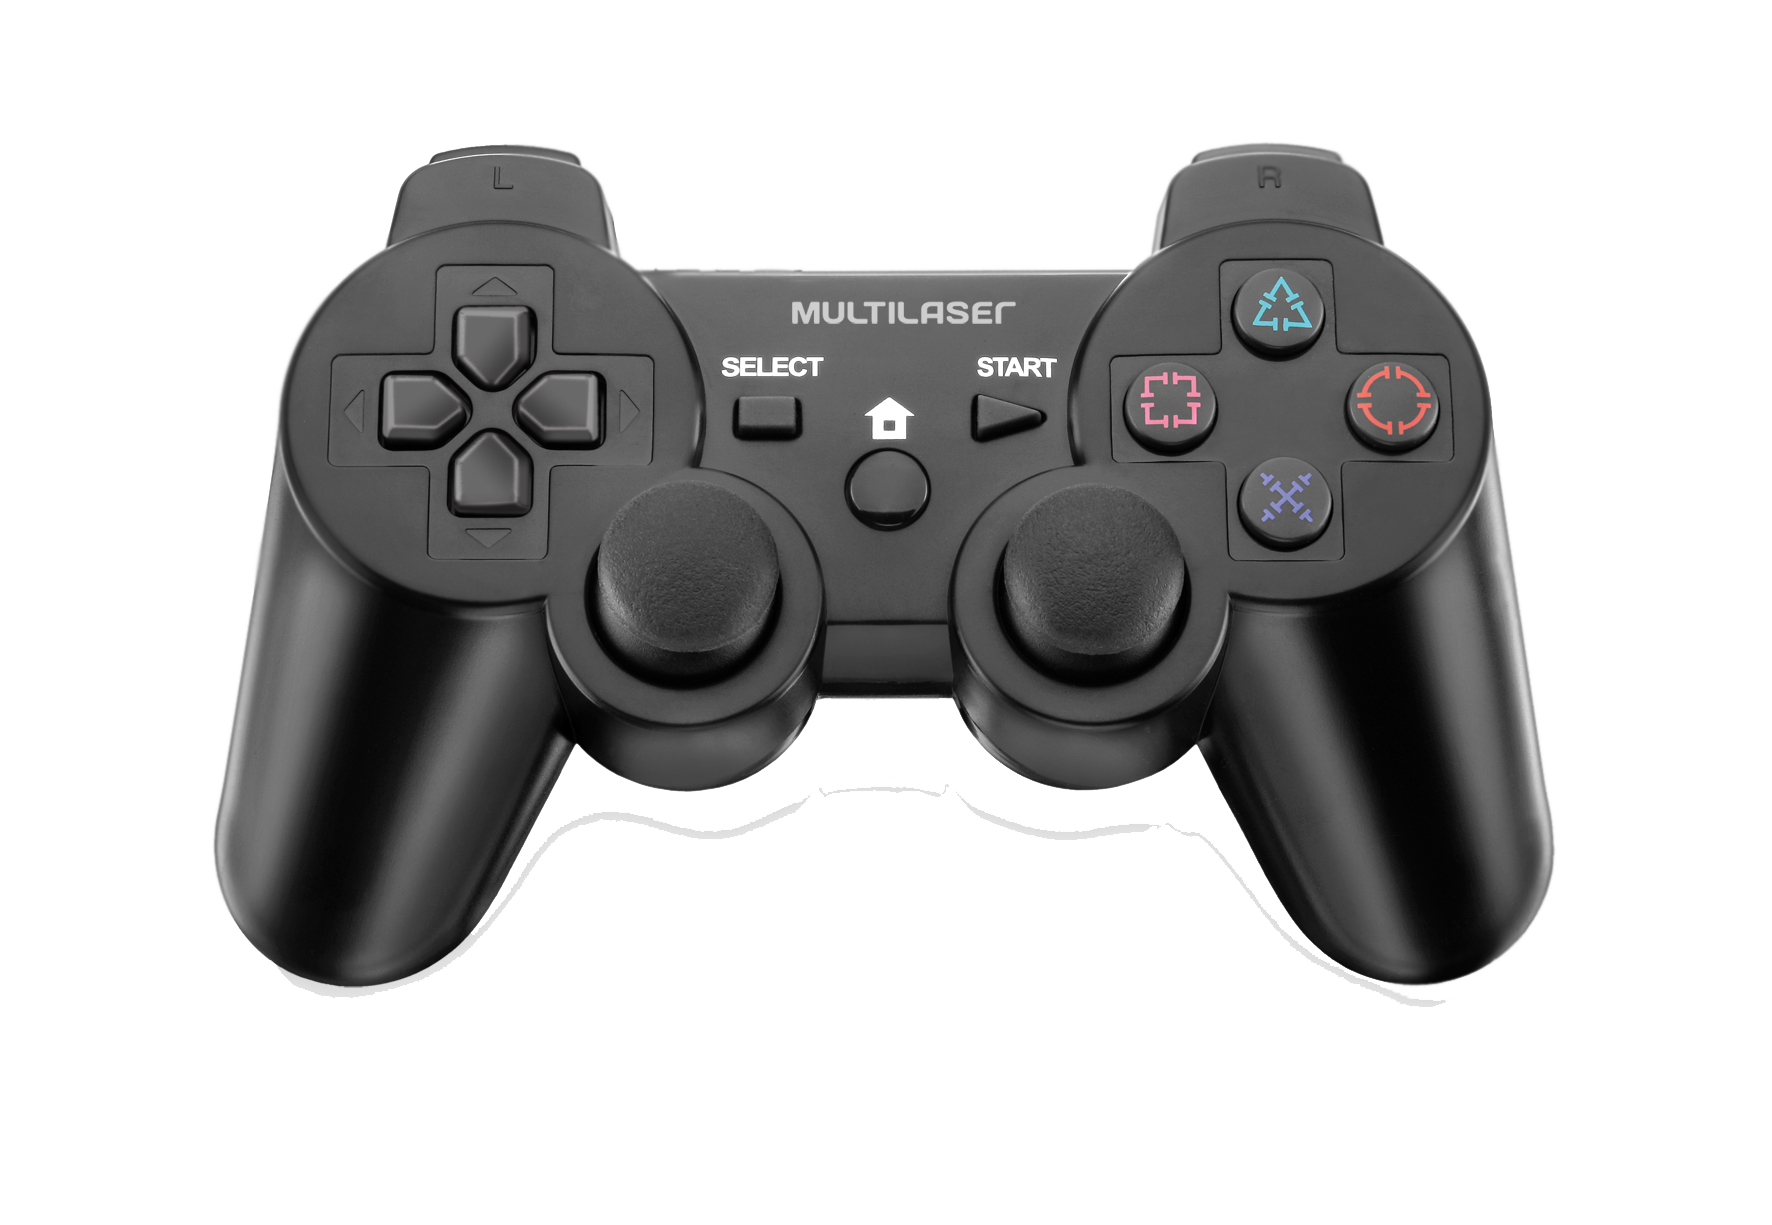 Joypad para PC/ PS2/ PS3 JS072 - Multilaser